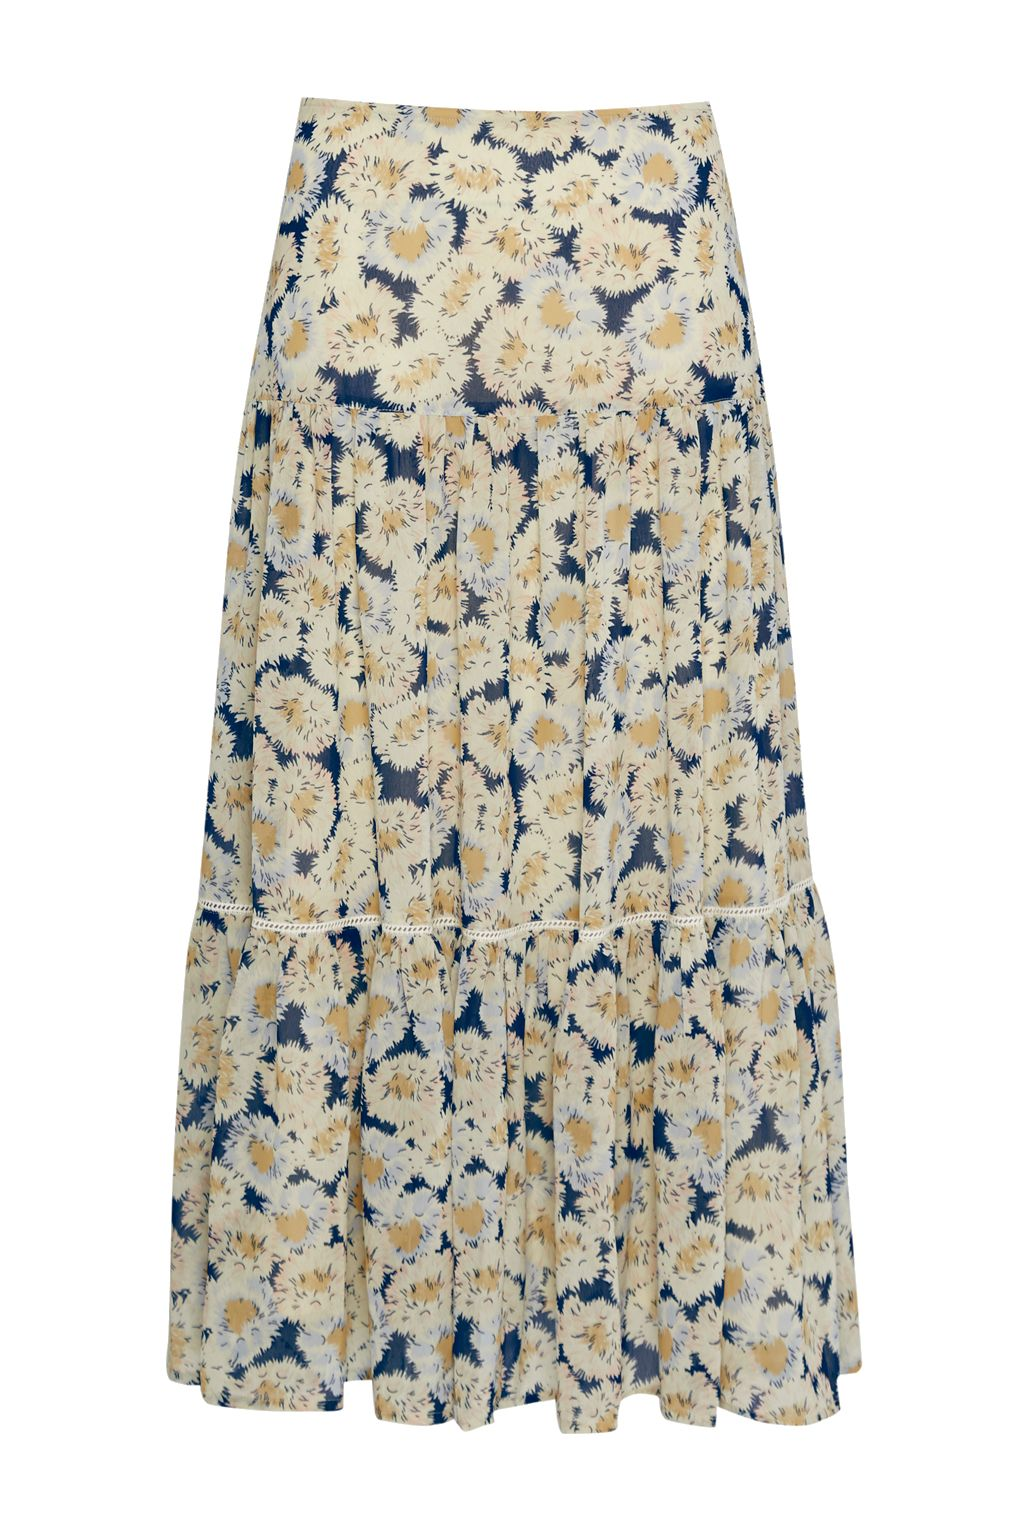 Great Plains Vintage Bloom Printed Skirt, Yellow